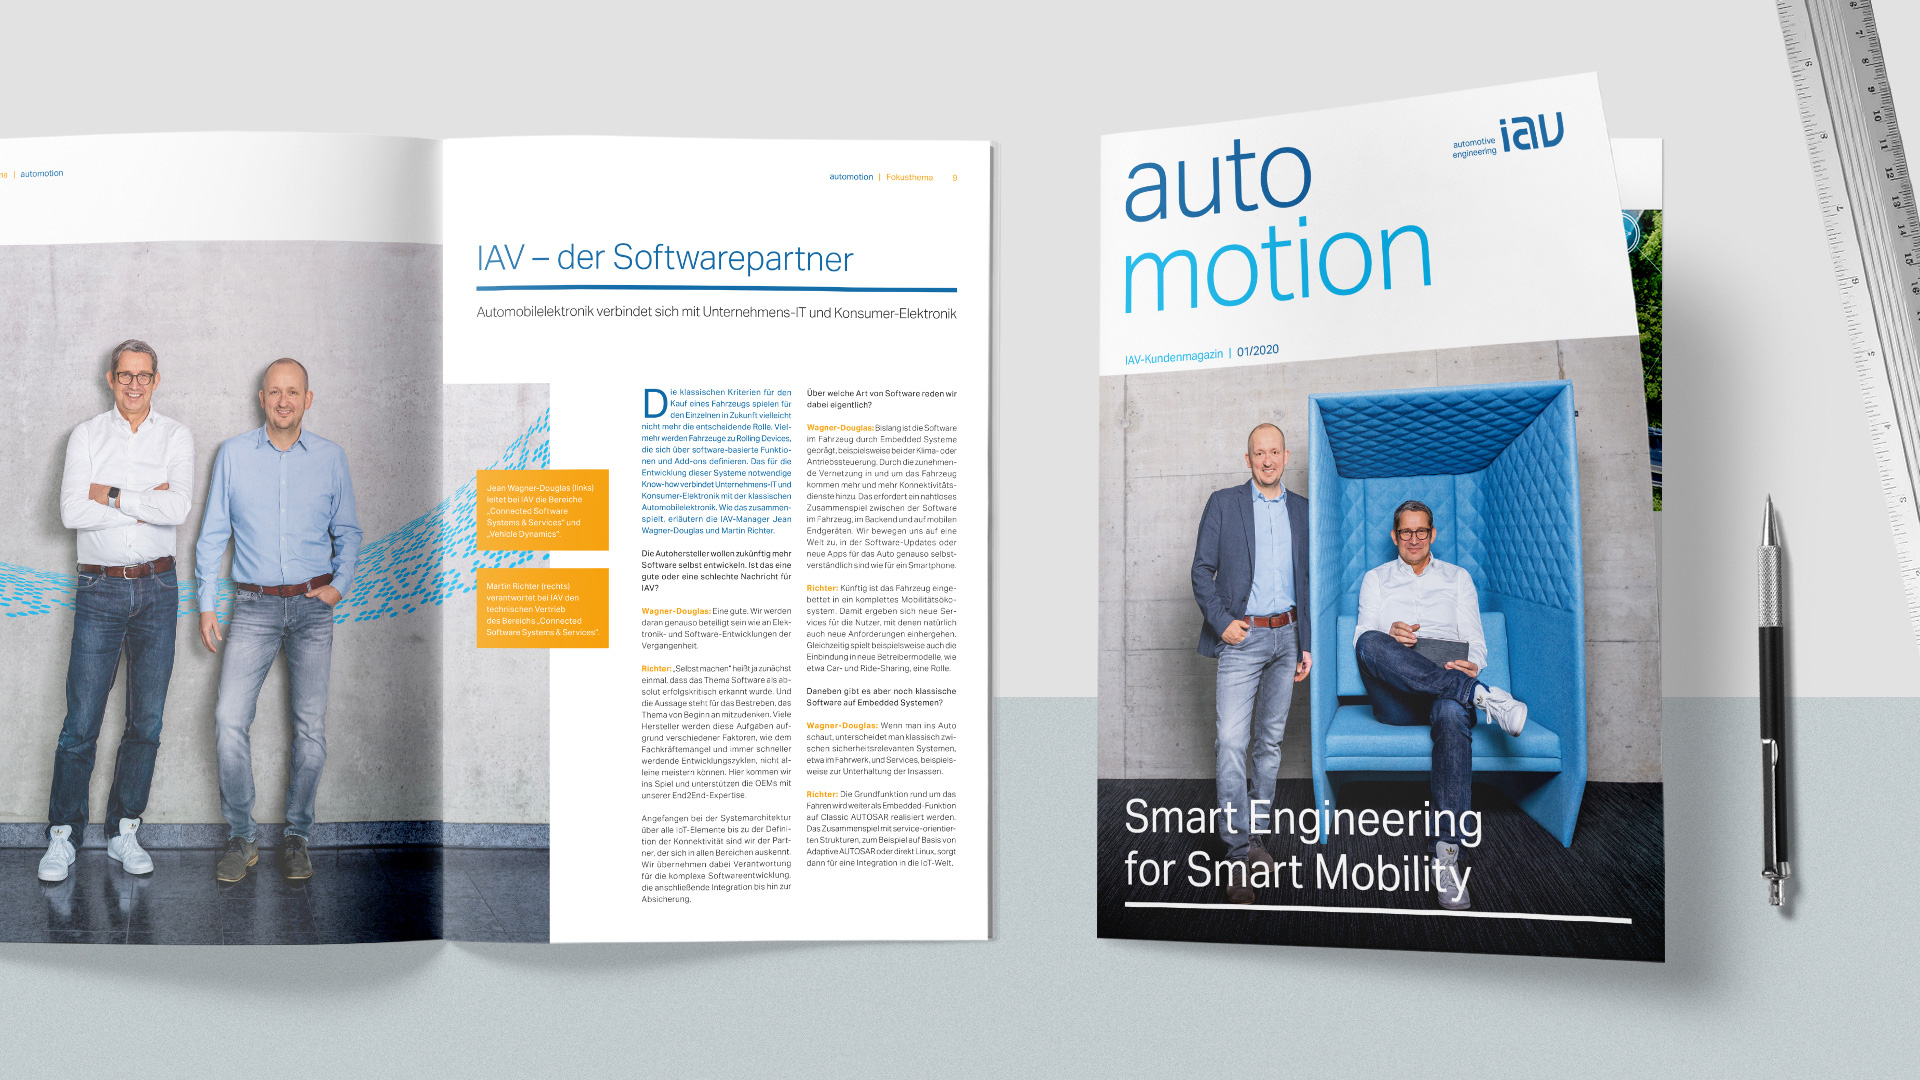 IAV Kundenmagazin automotion: Titelthema